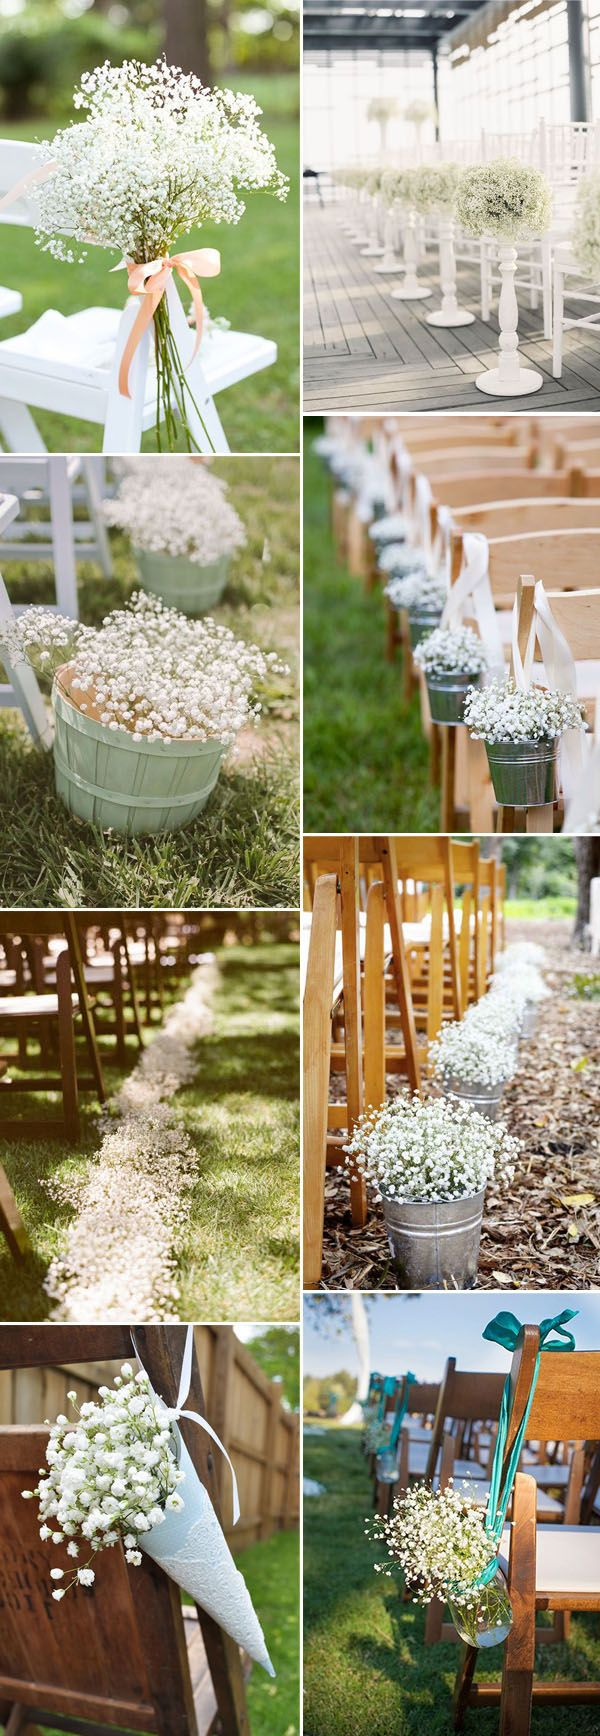 Save Your Budget On Weddings With 45 Baby S Breath Ideas Cheap Wedding Decorations Babys Breath Wedding Wedding Decorations